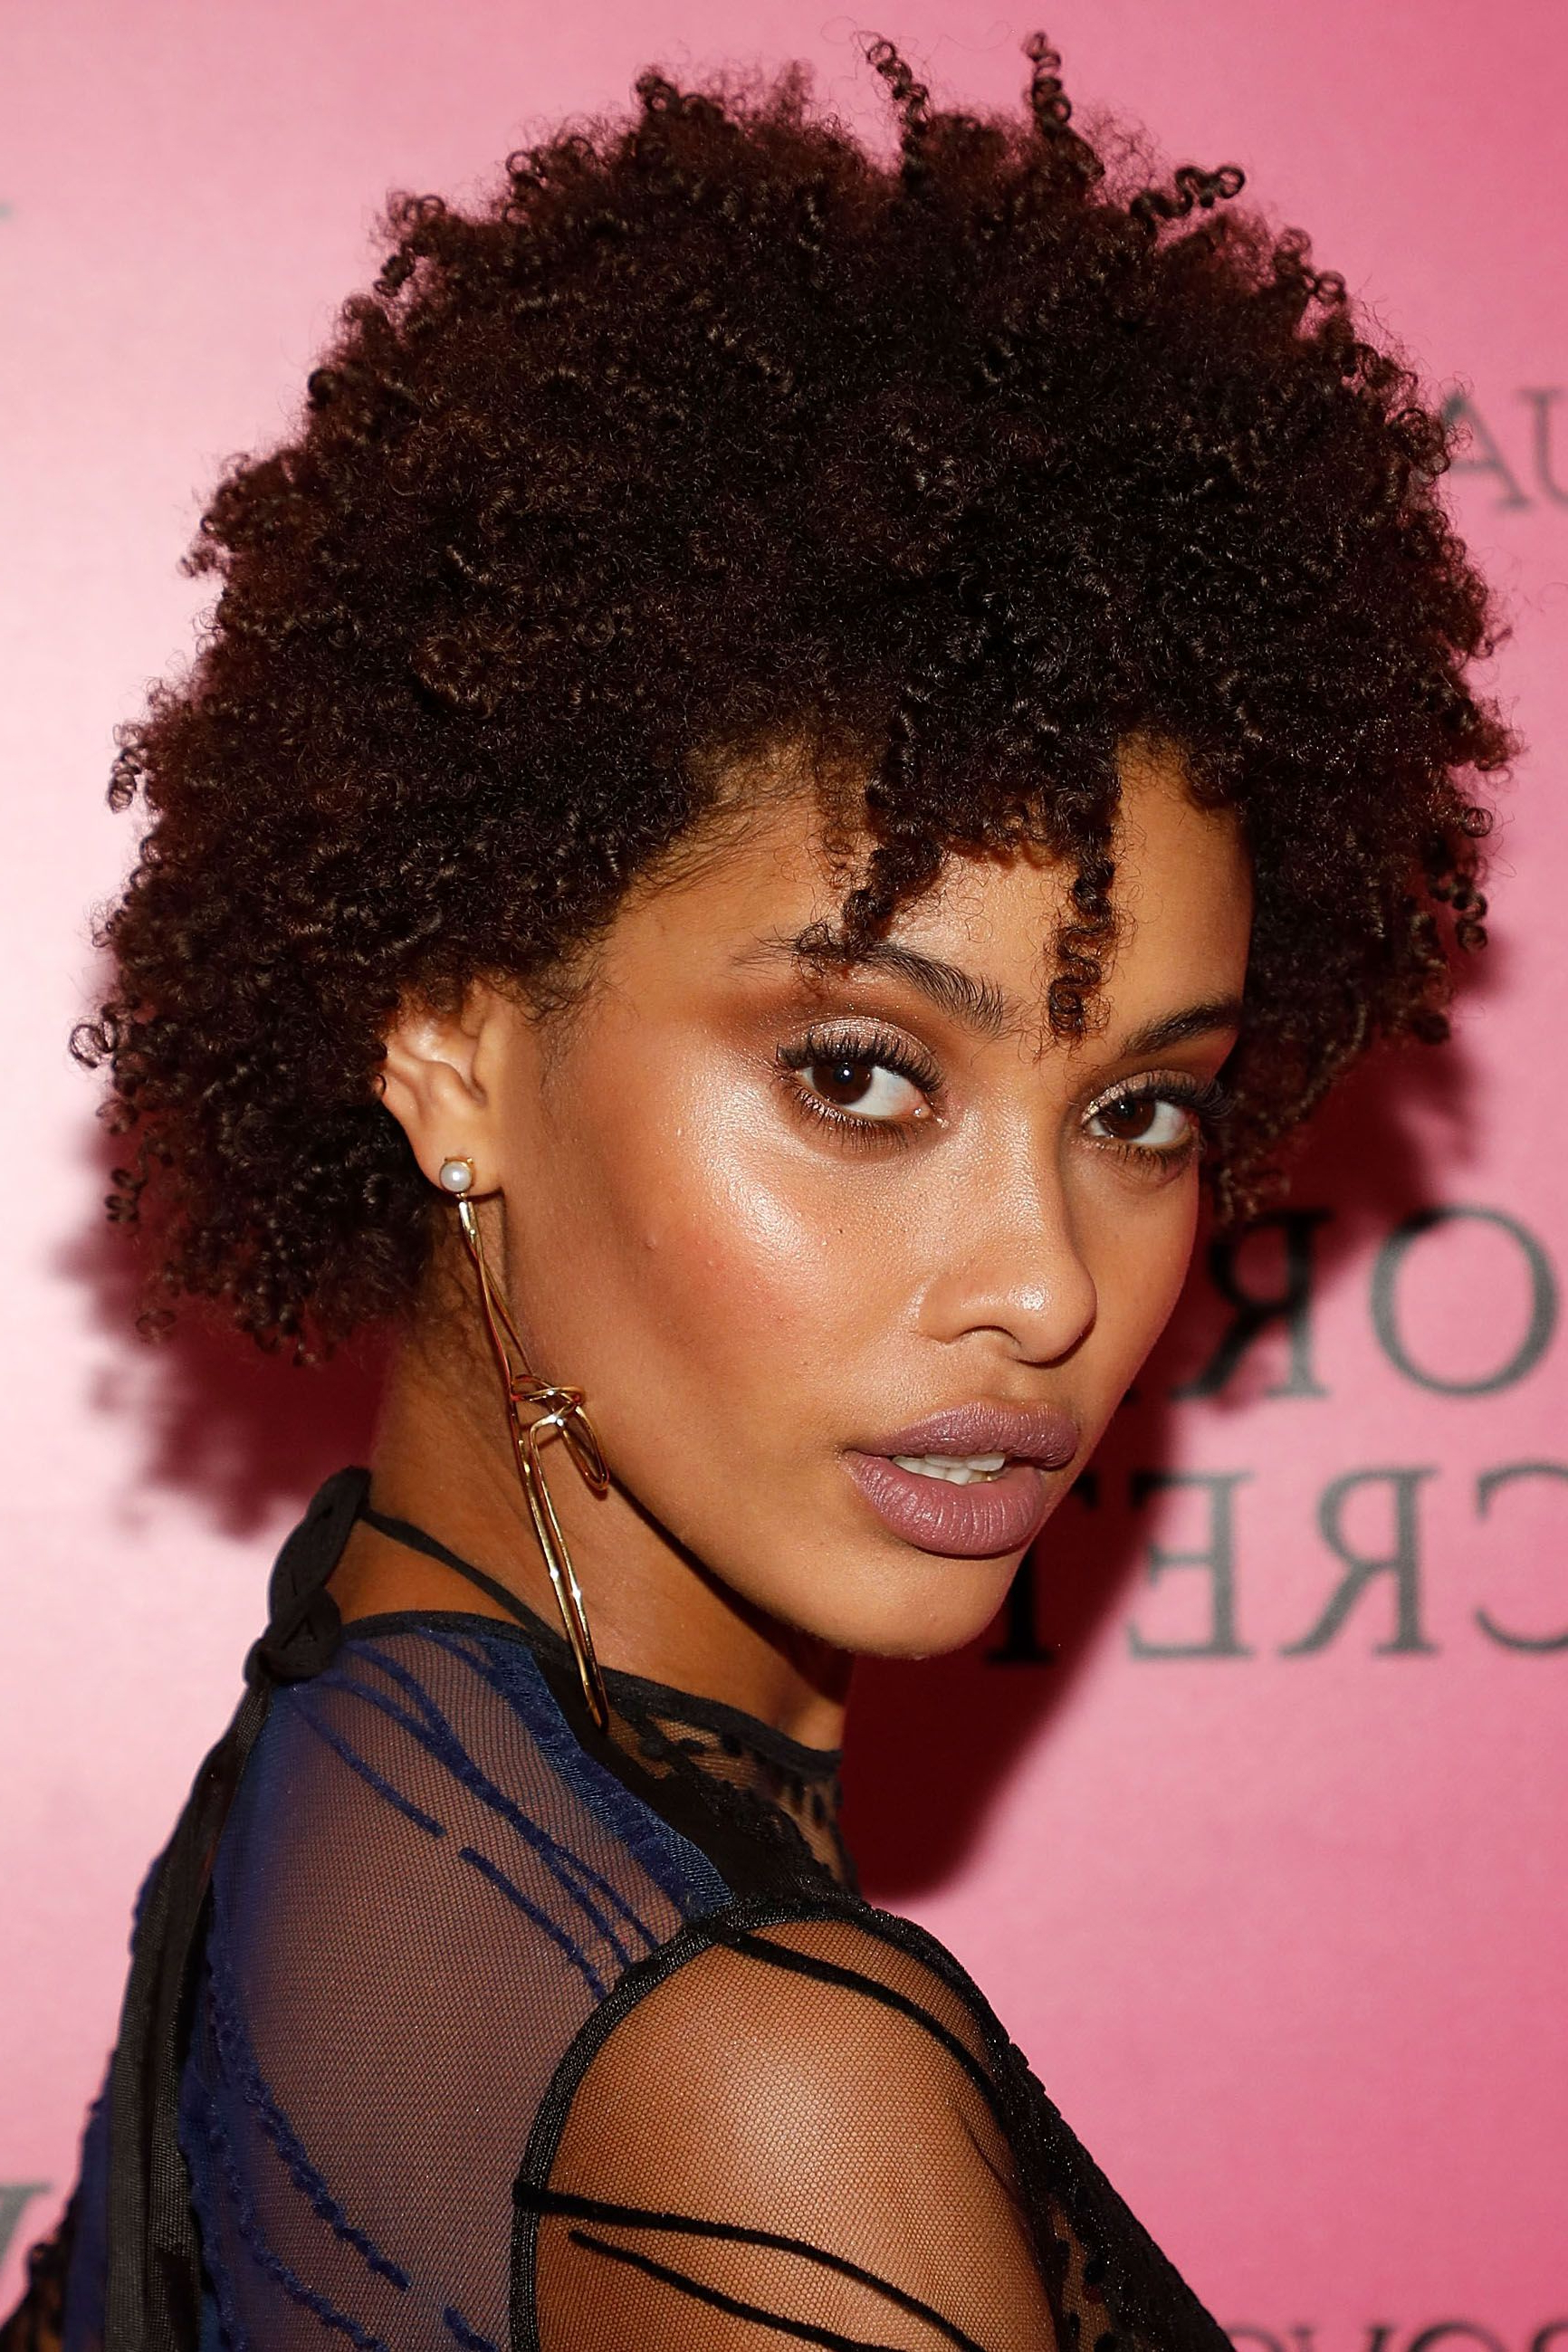 30 Easy Natural Hairstyles For Black Women – Short, Medium & Long Within Most Current Medium Haircuts For Kinky Hair (Gallery 12 of 20)